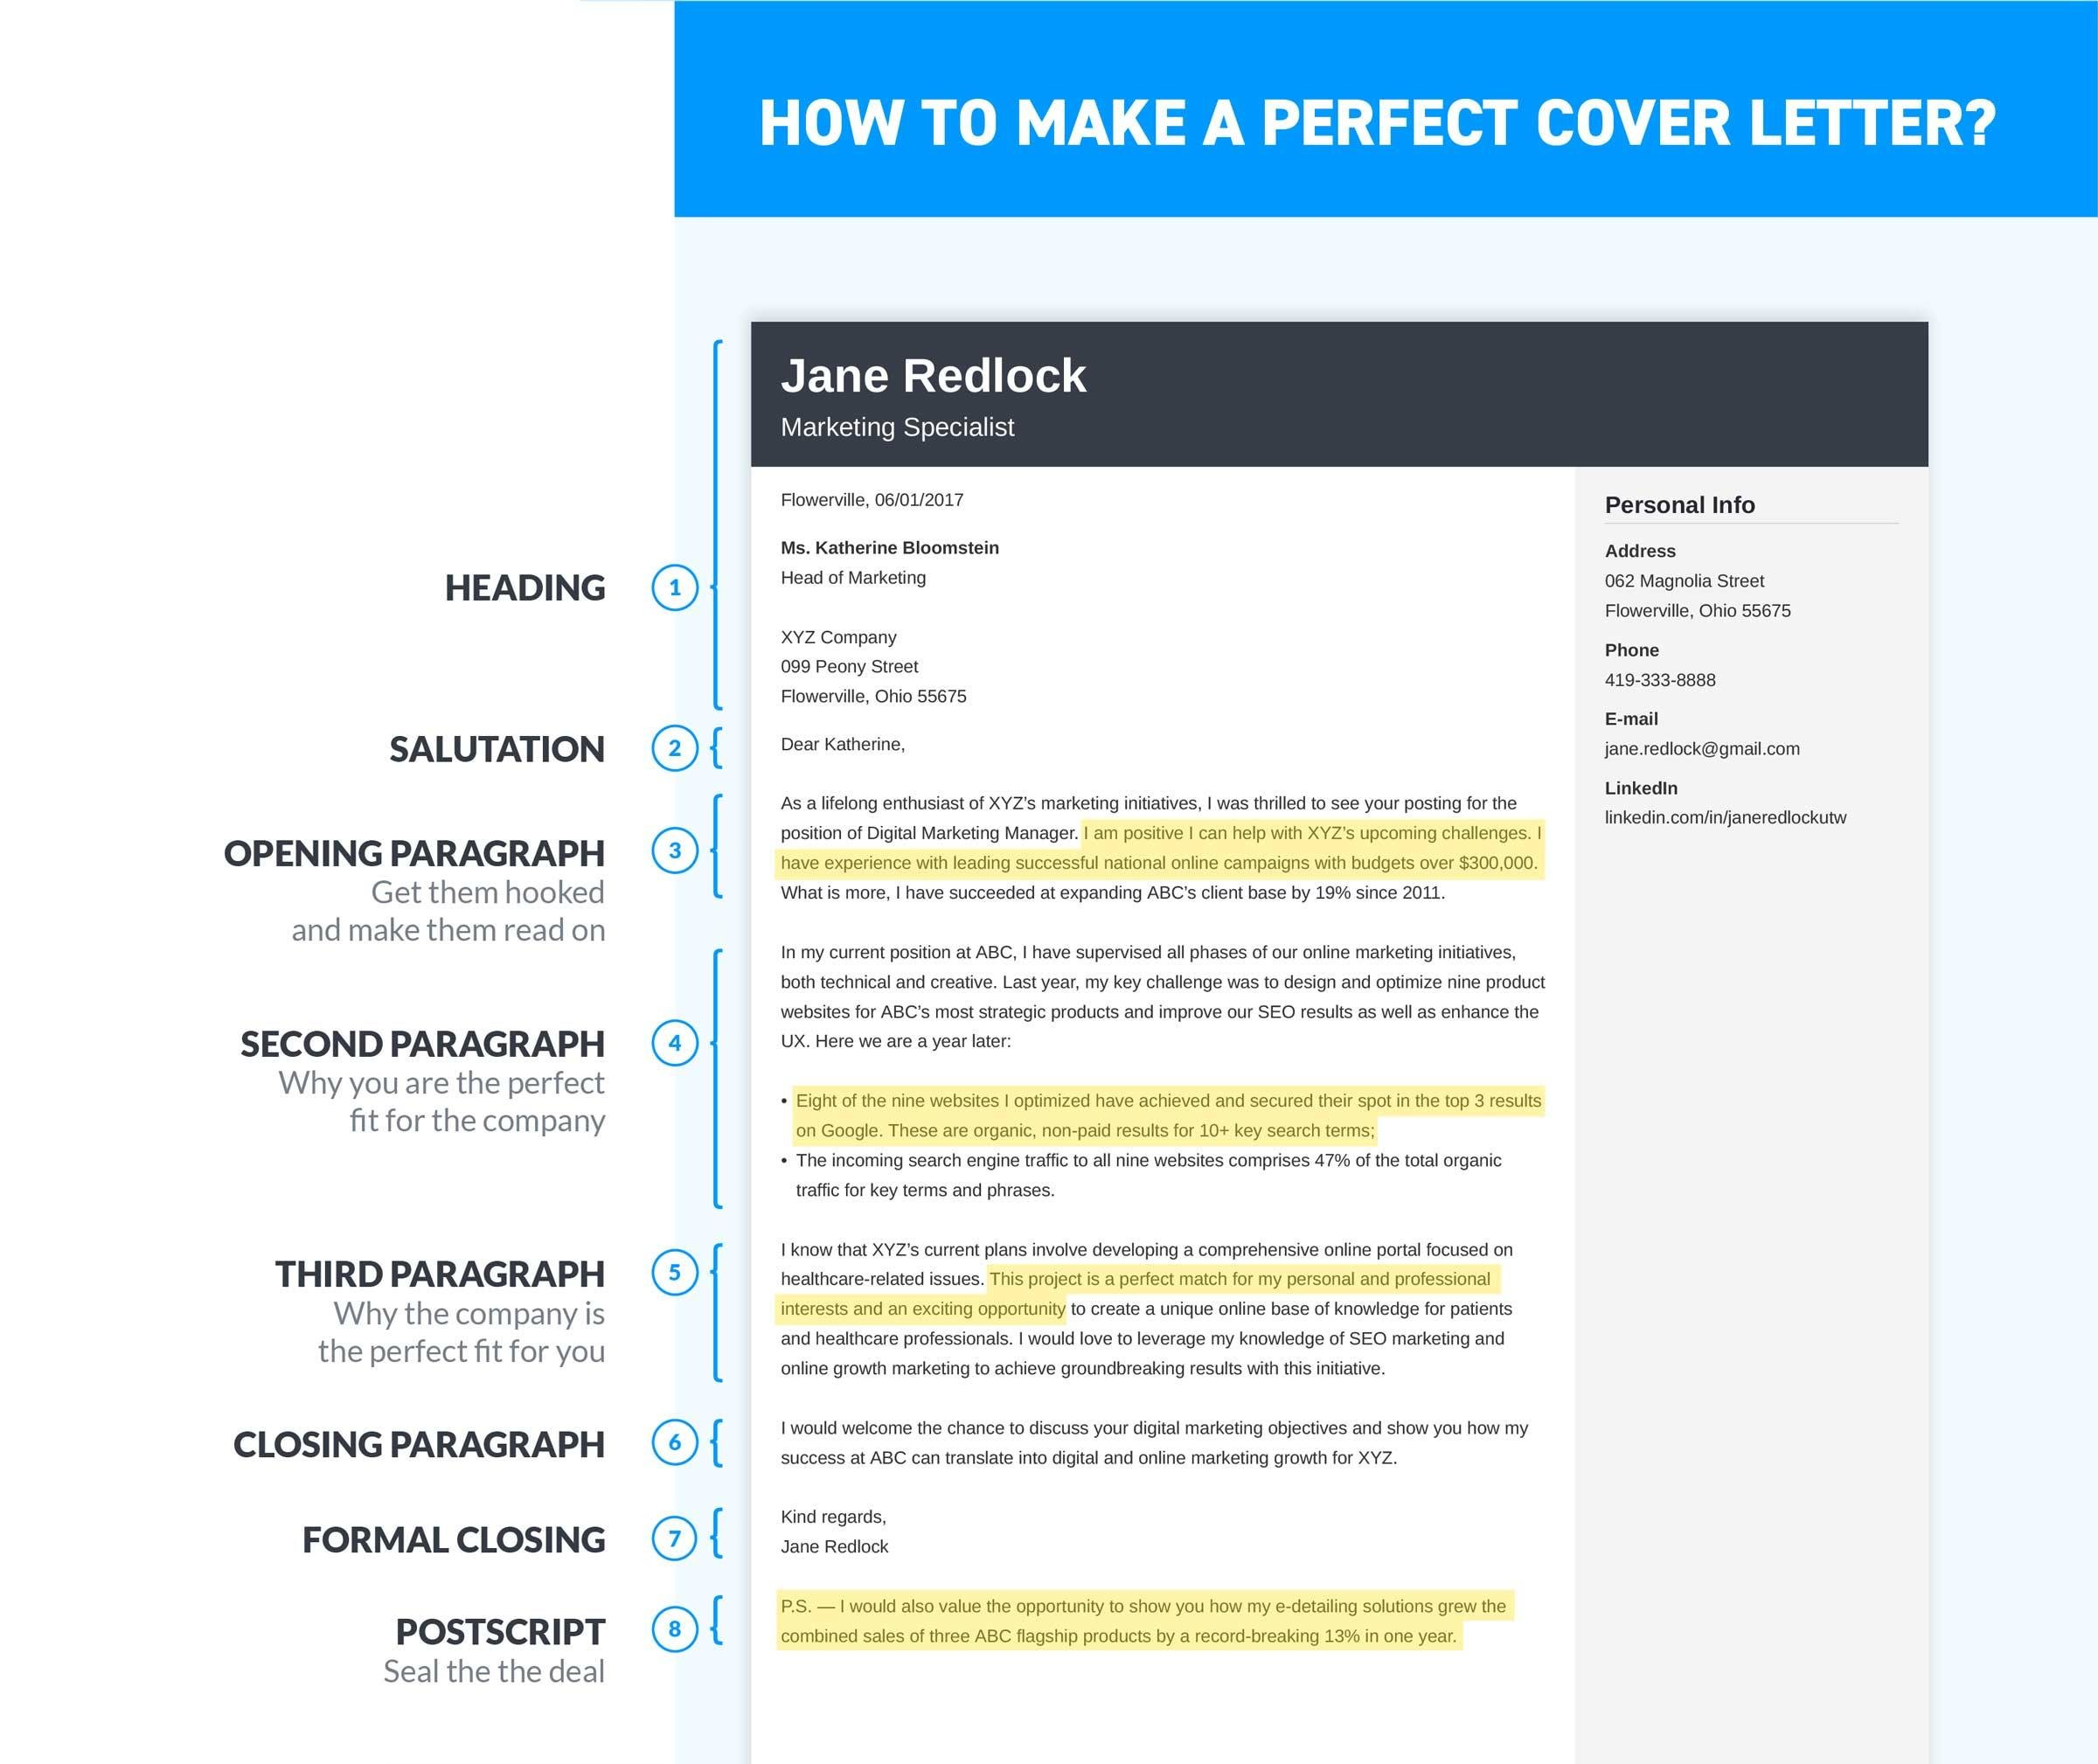 How To Make A Perfect Cover Letter Infographic Throughout What Is A Cover Letter